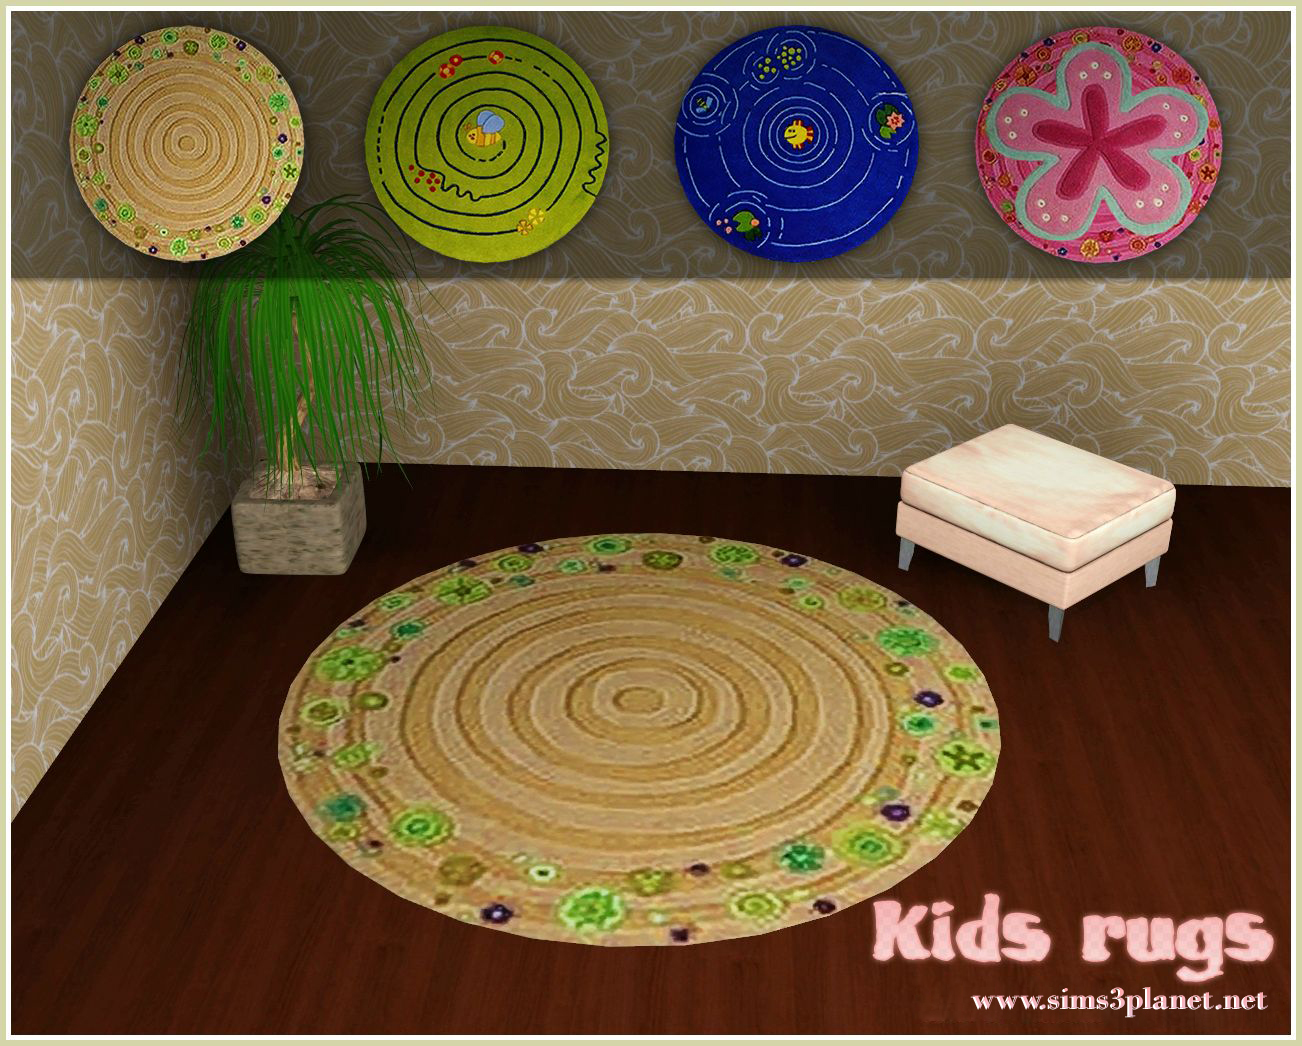 Kids rugs by Cassie